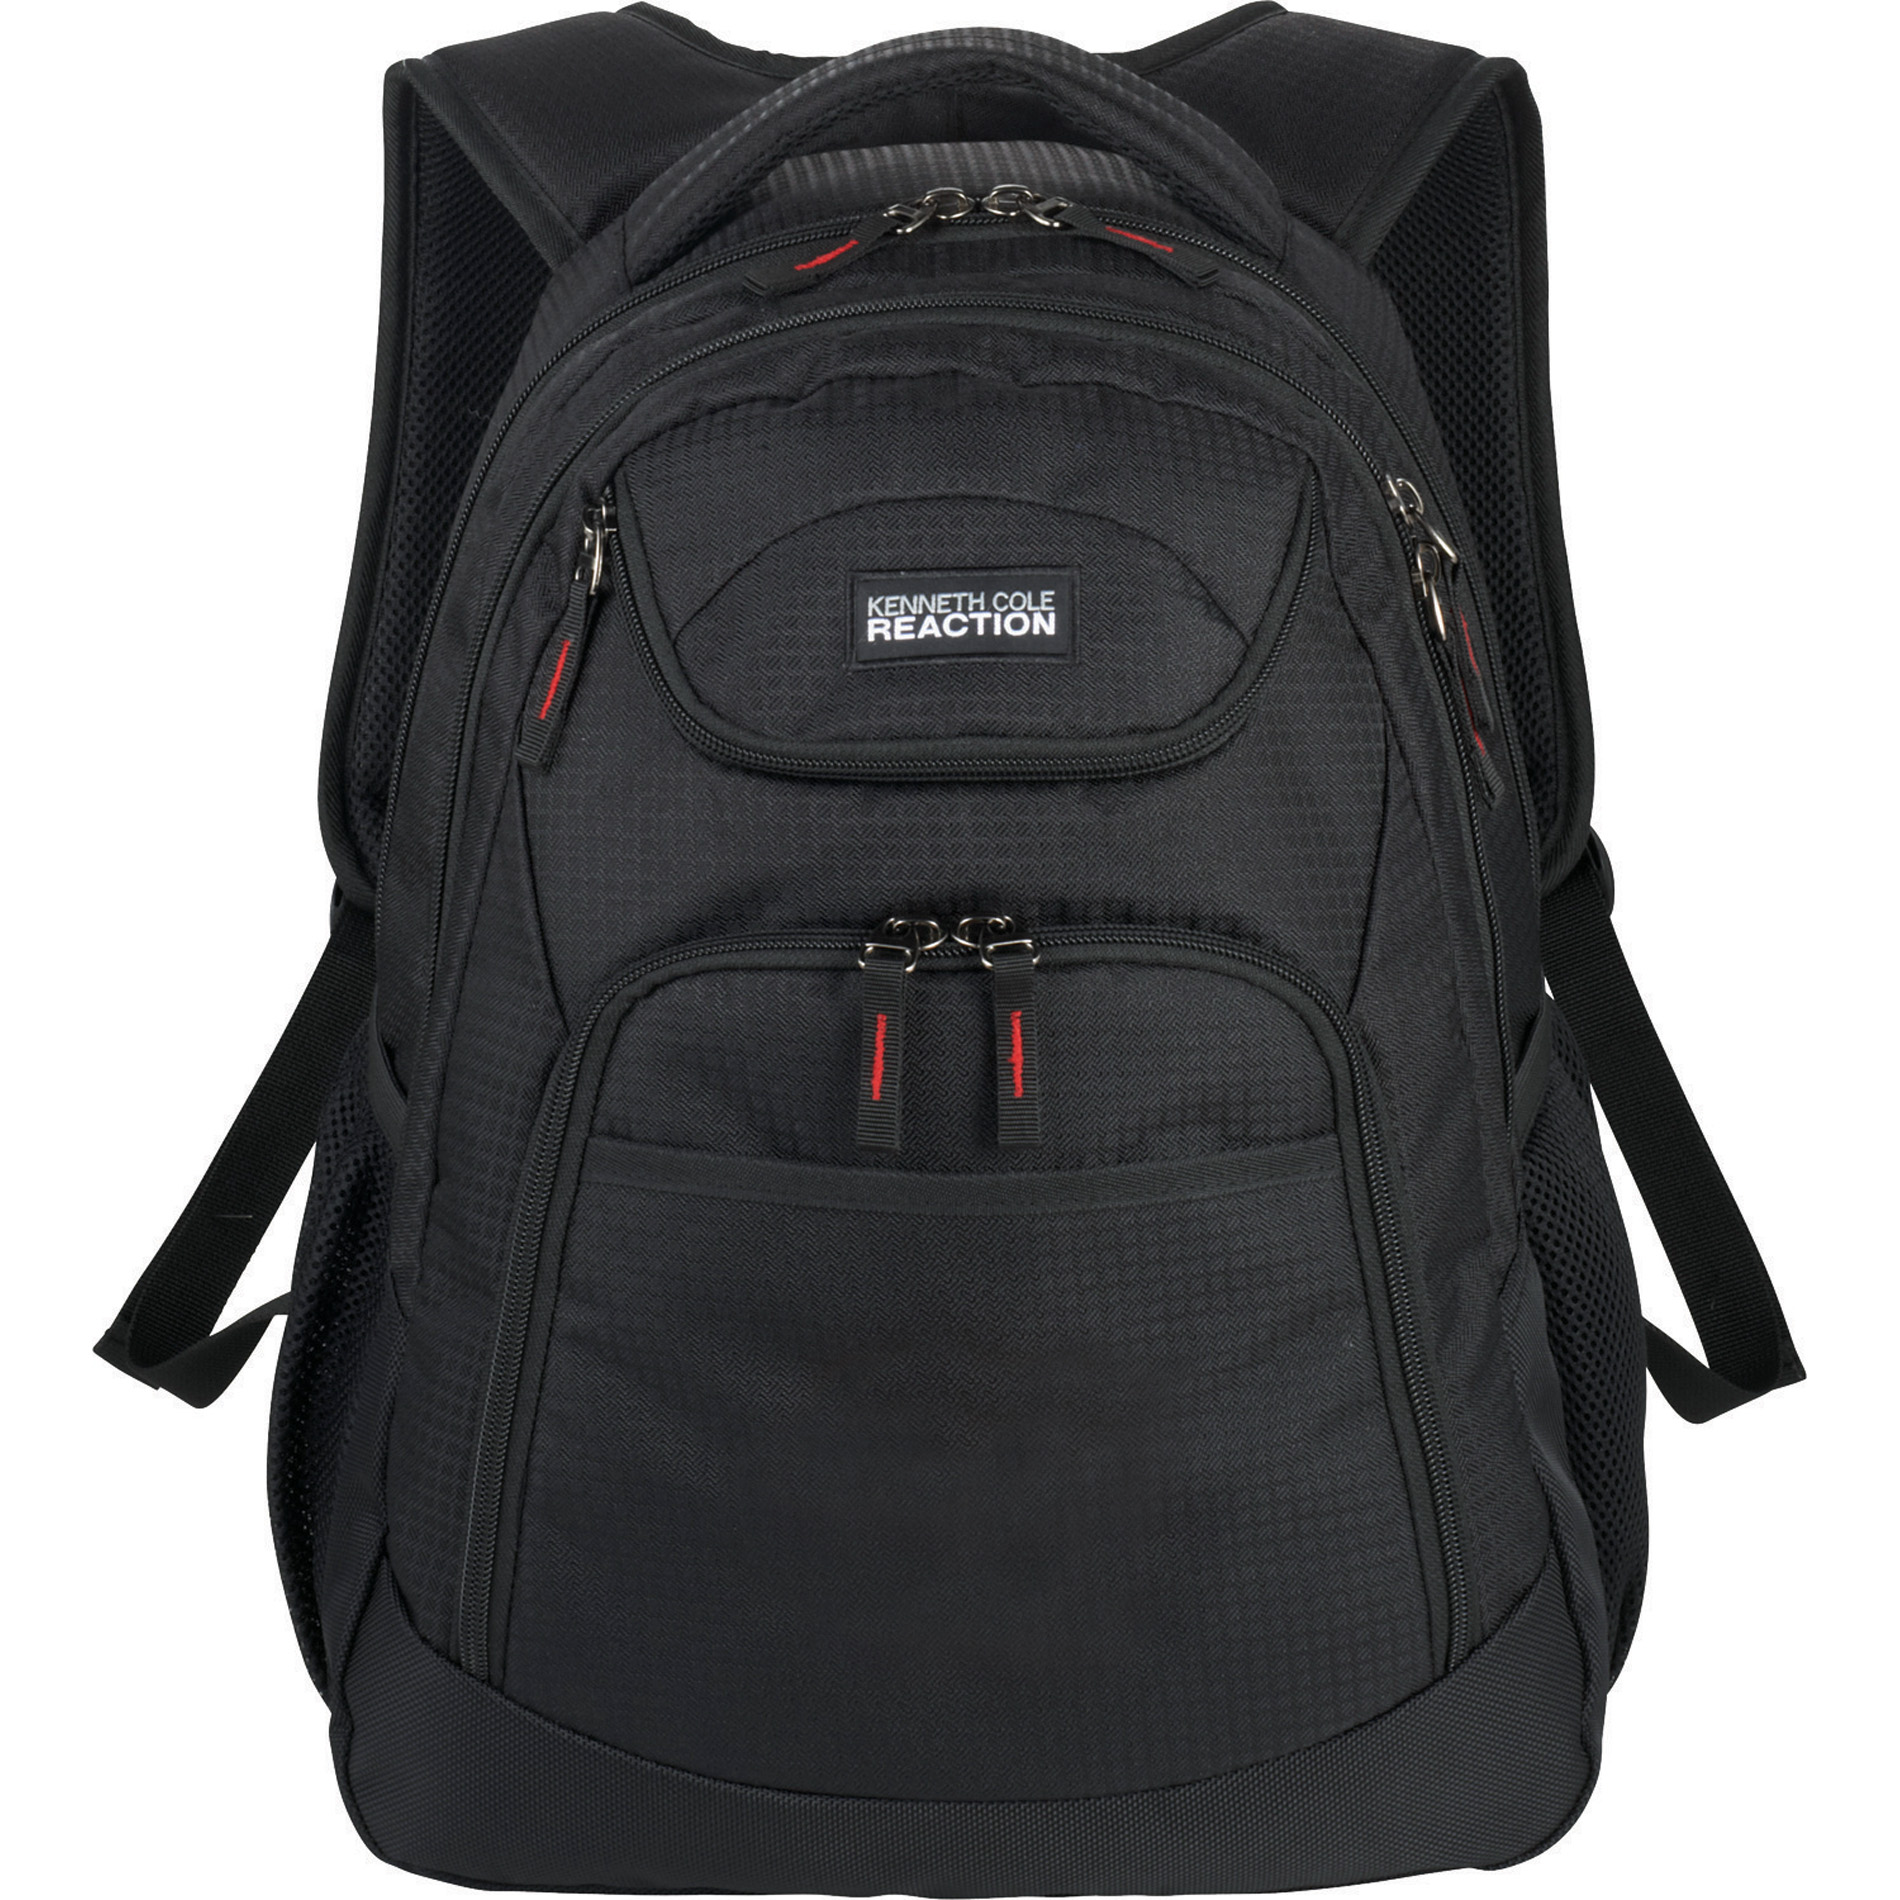 "Kenneth Cole 9950-56 - Reaction 15"" Computer Backpack"